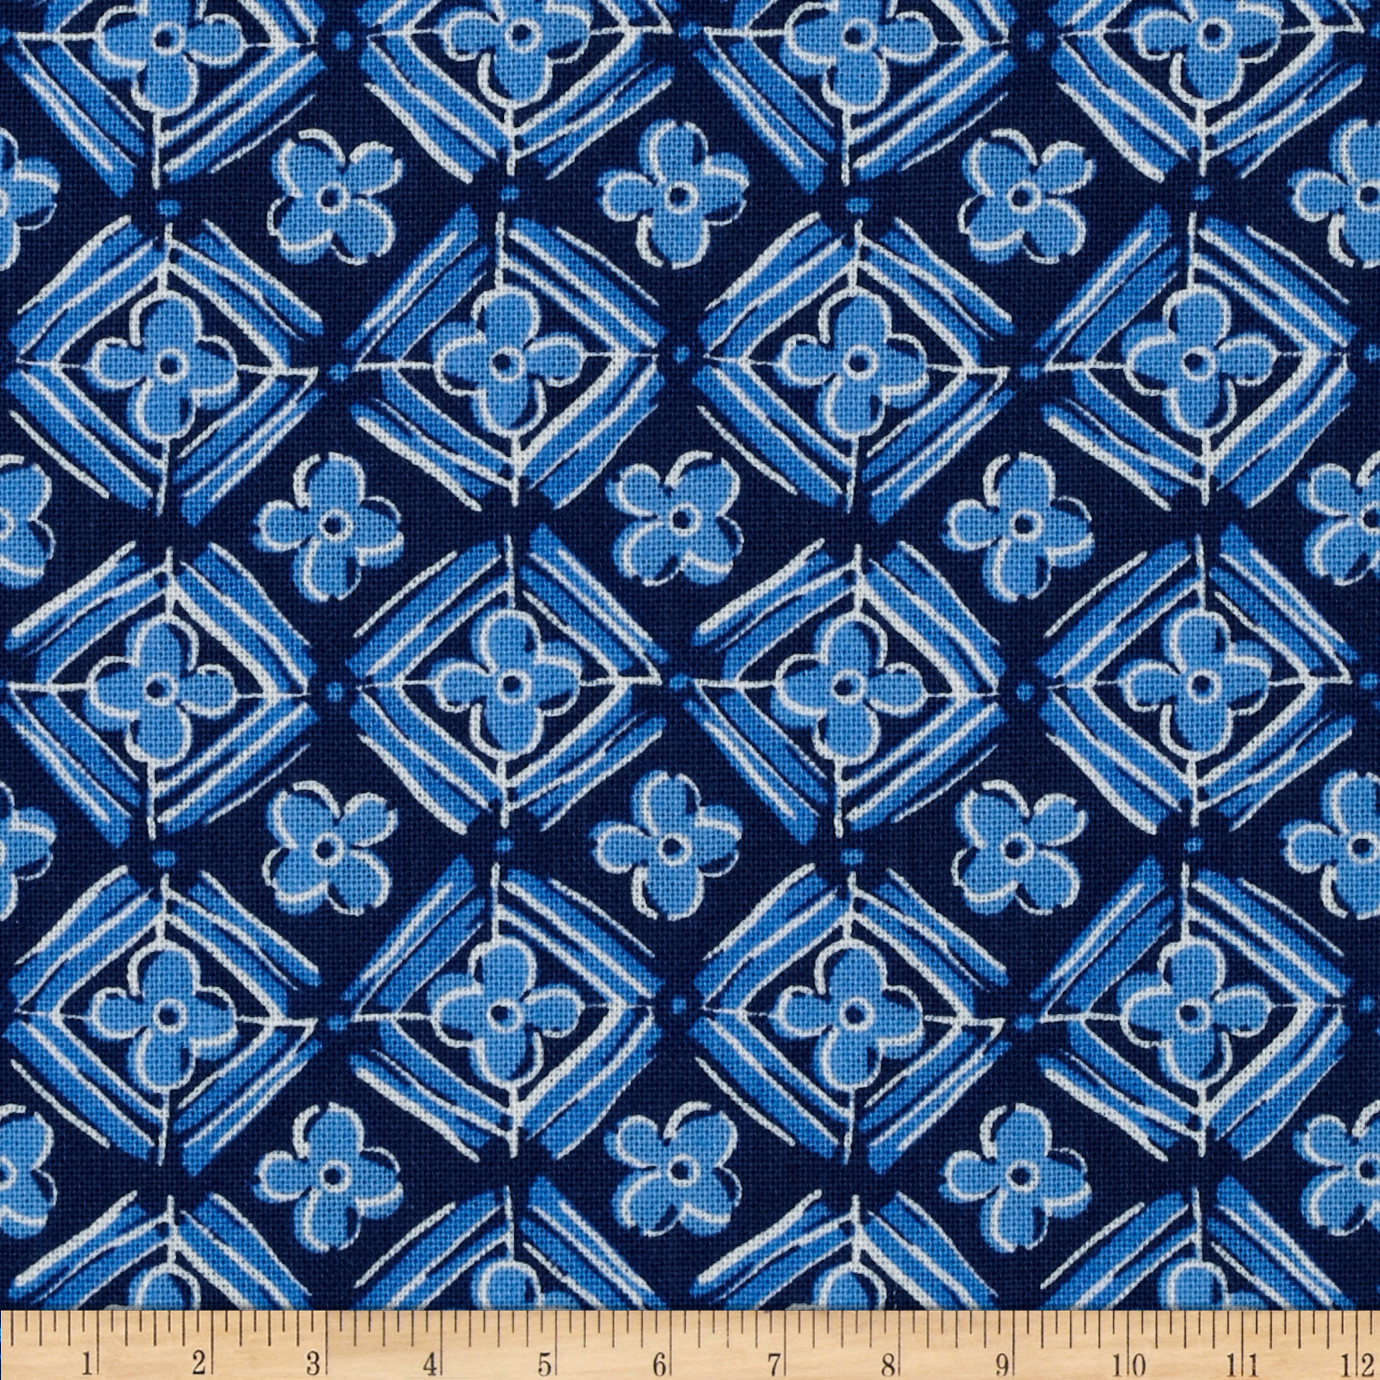 Meridian Floral Diamonds Blue/Navy Fabric